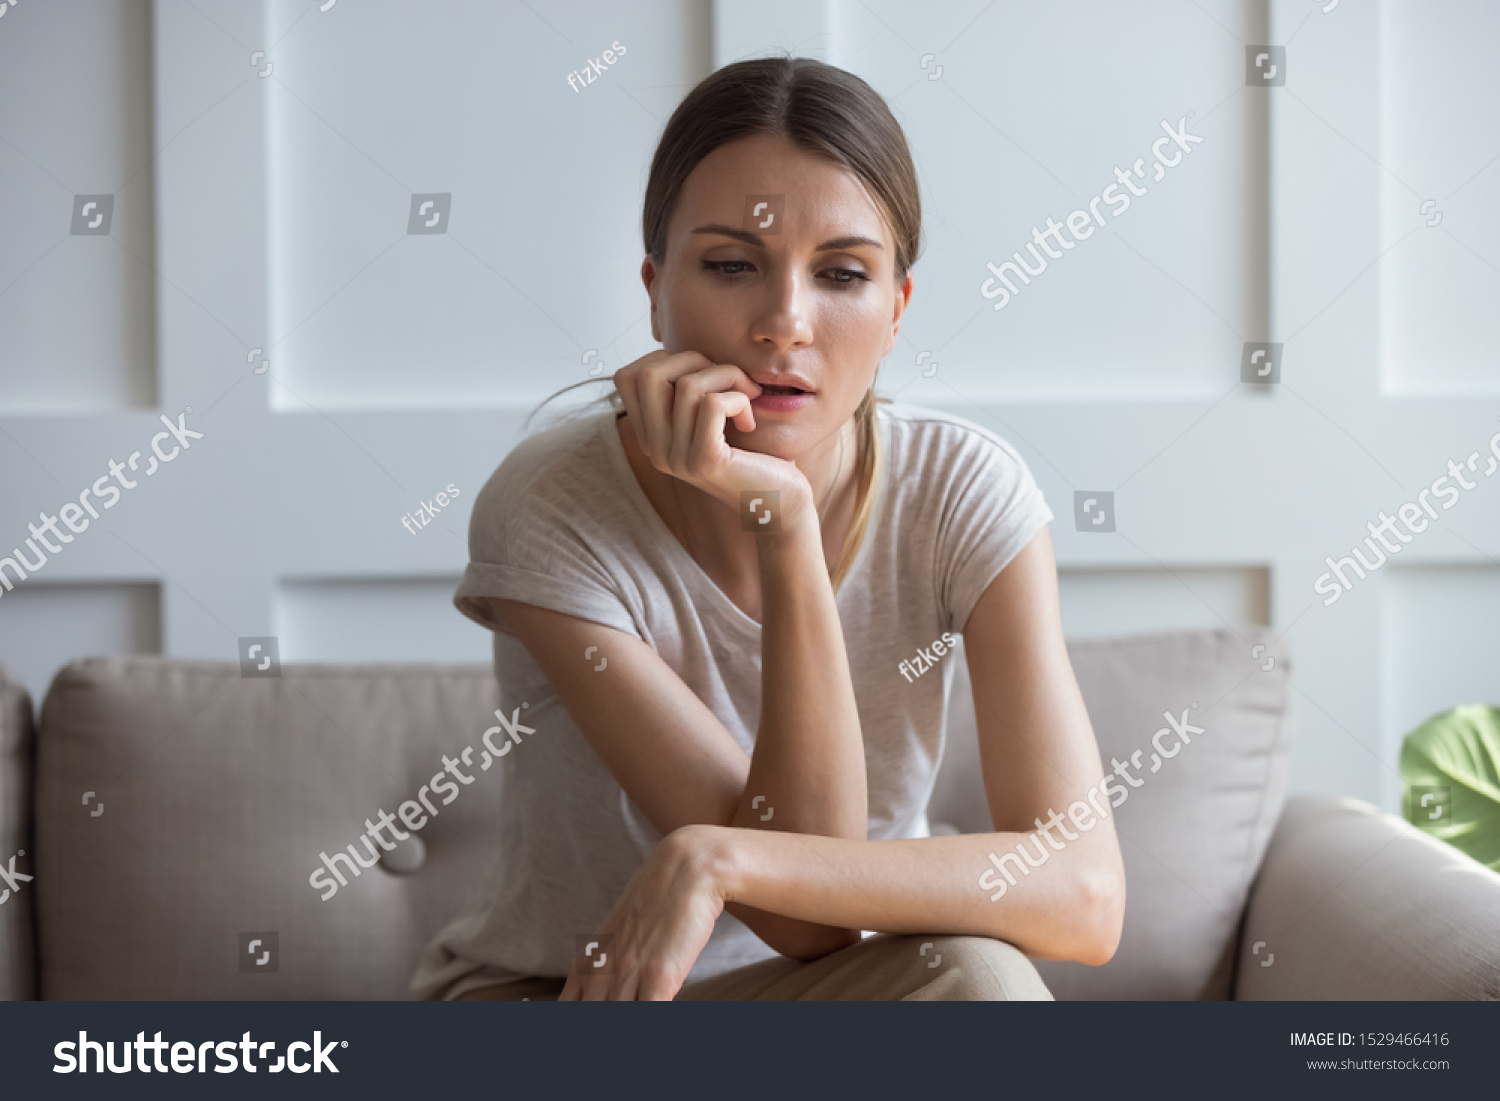 Lost on sad thoughts millennial 30s woman sitting on couch at home feels emptiness by personal difficulties and unsolvable problems, concept of jealous wife, lonely single frustrated female concept #1529466416